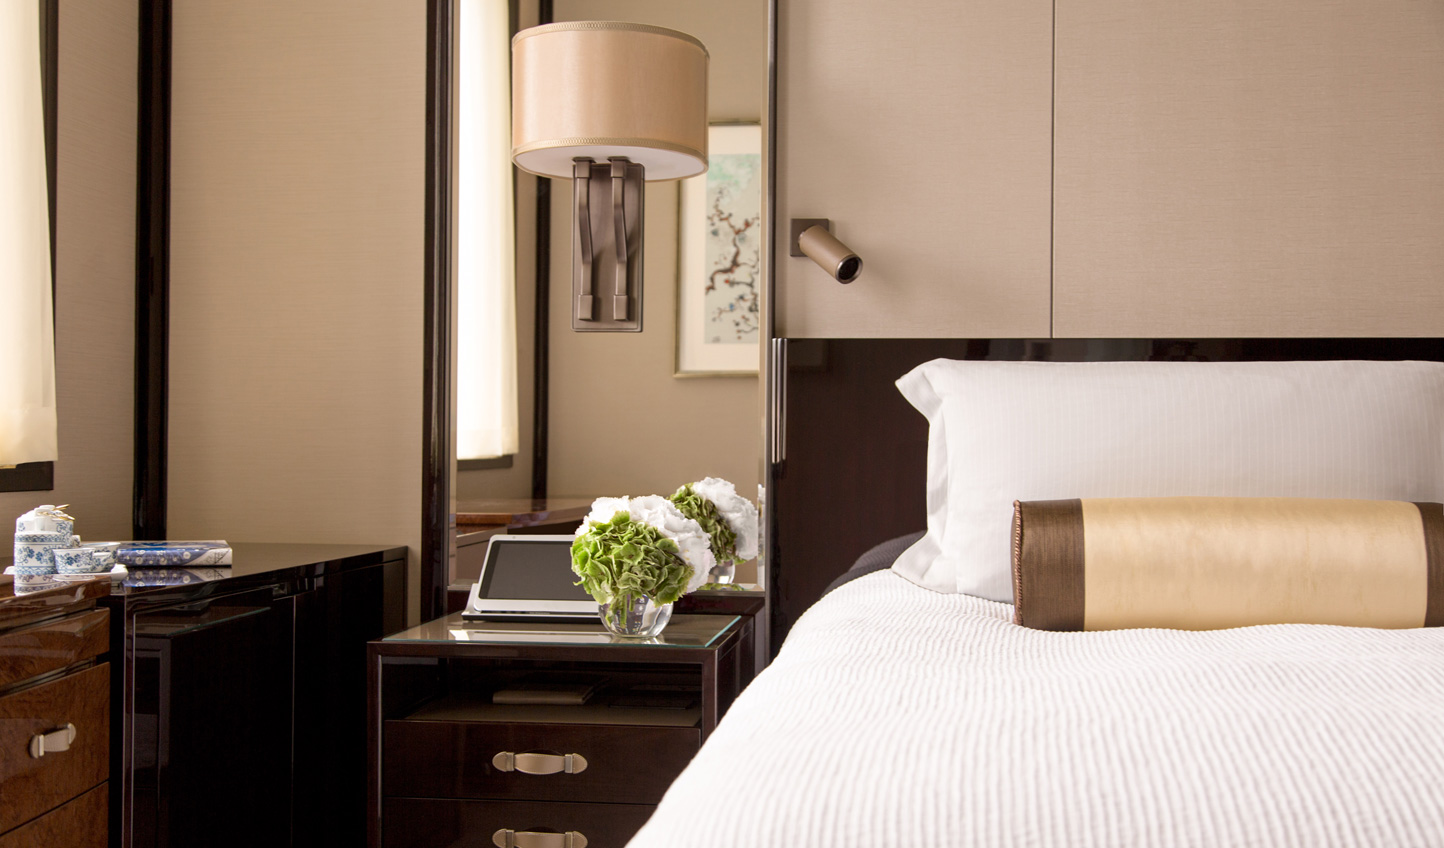 Fall back into sumptuously soft king size beds